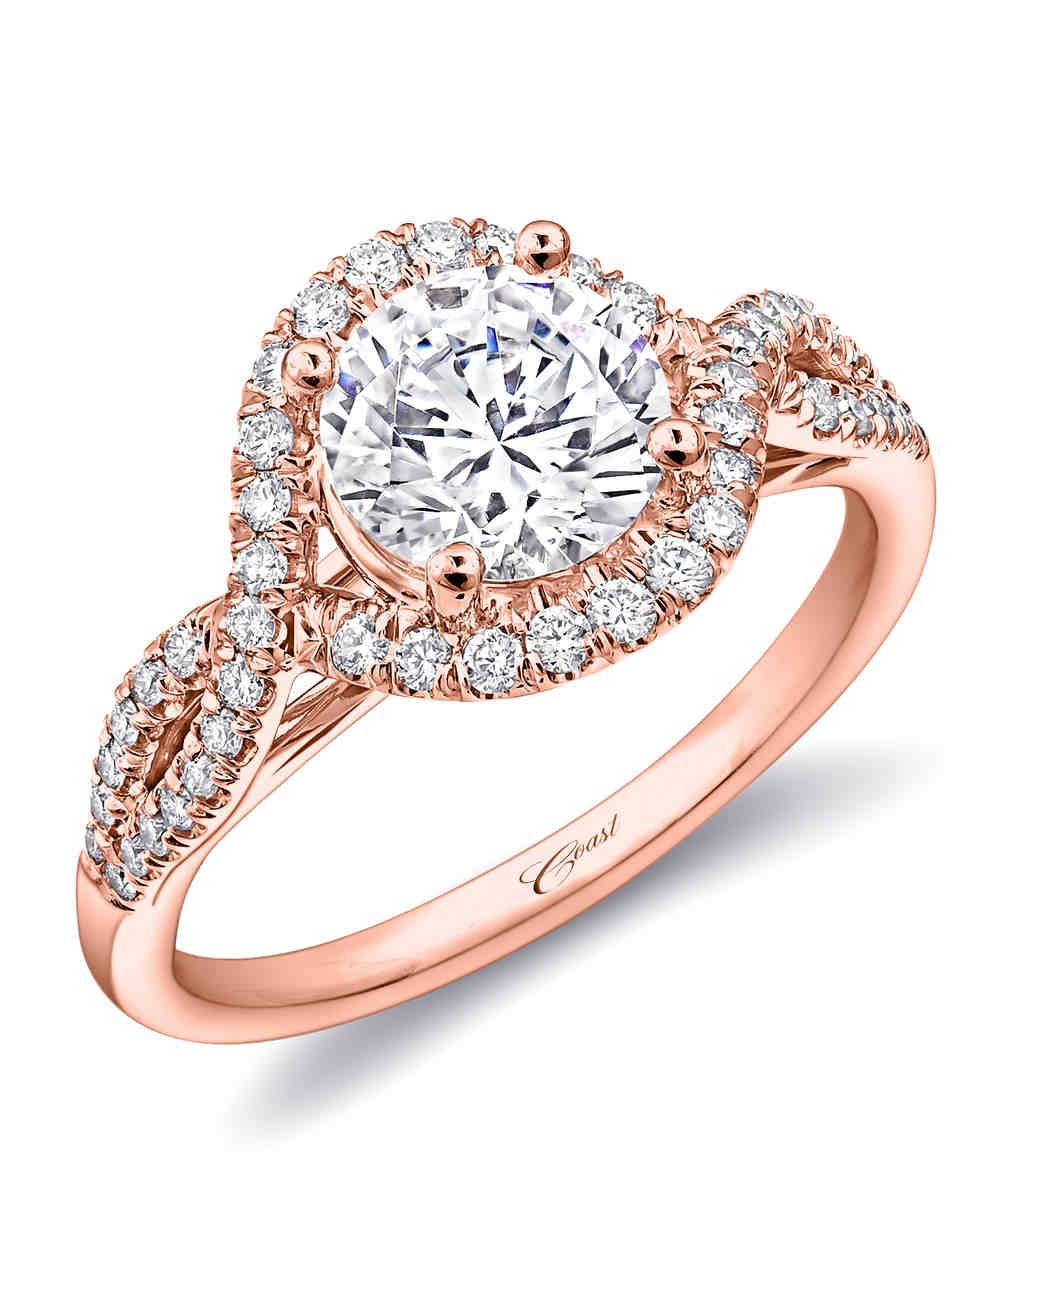 Coast Diamond Rose Gold Engagement Ring with Fishtail Setting